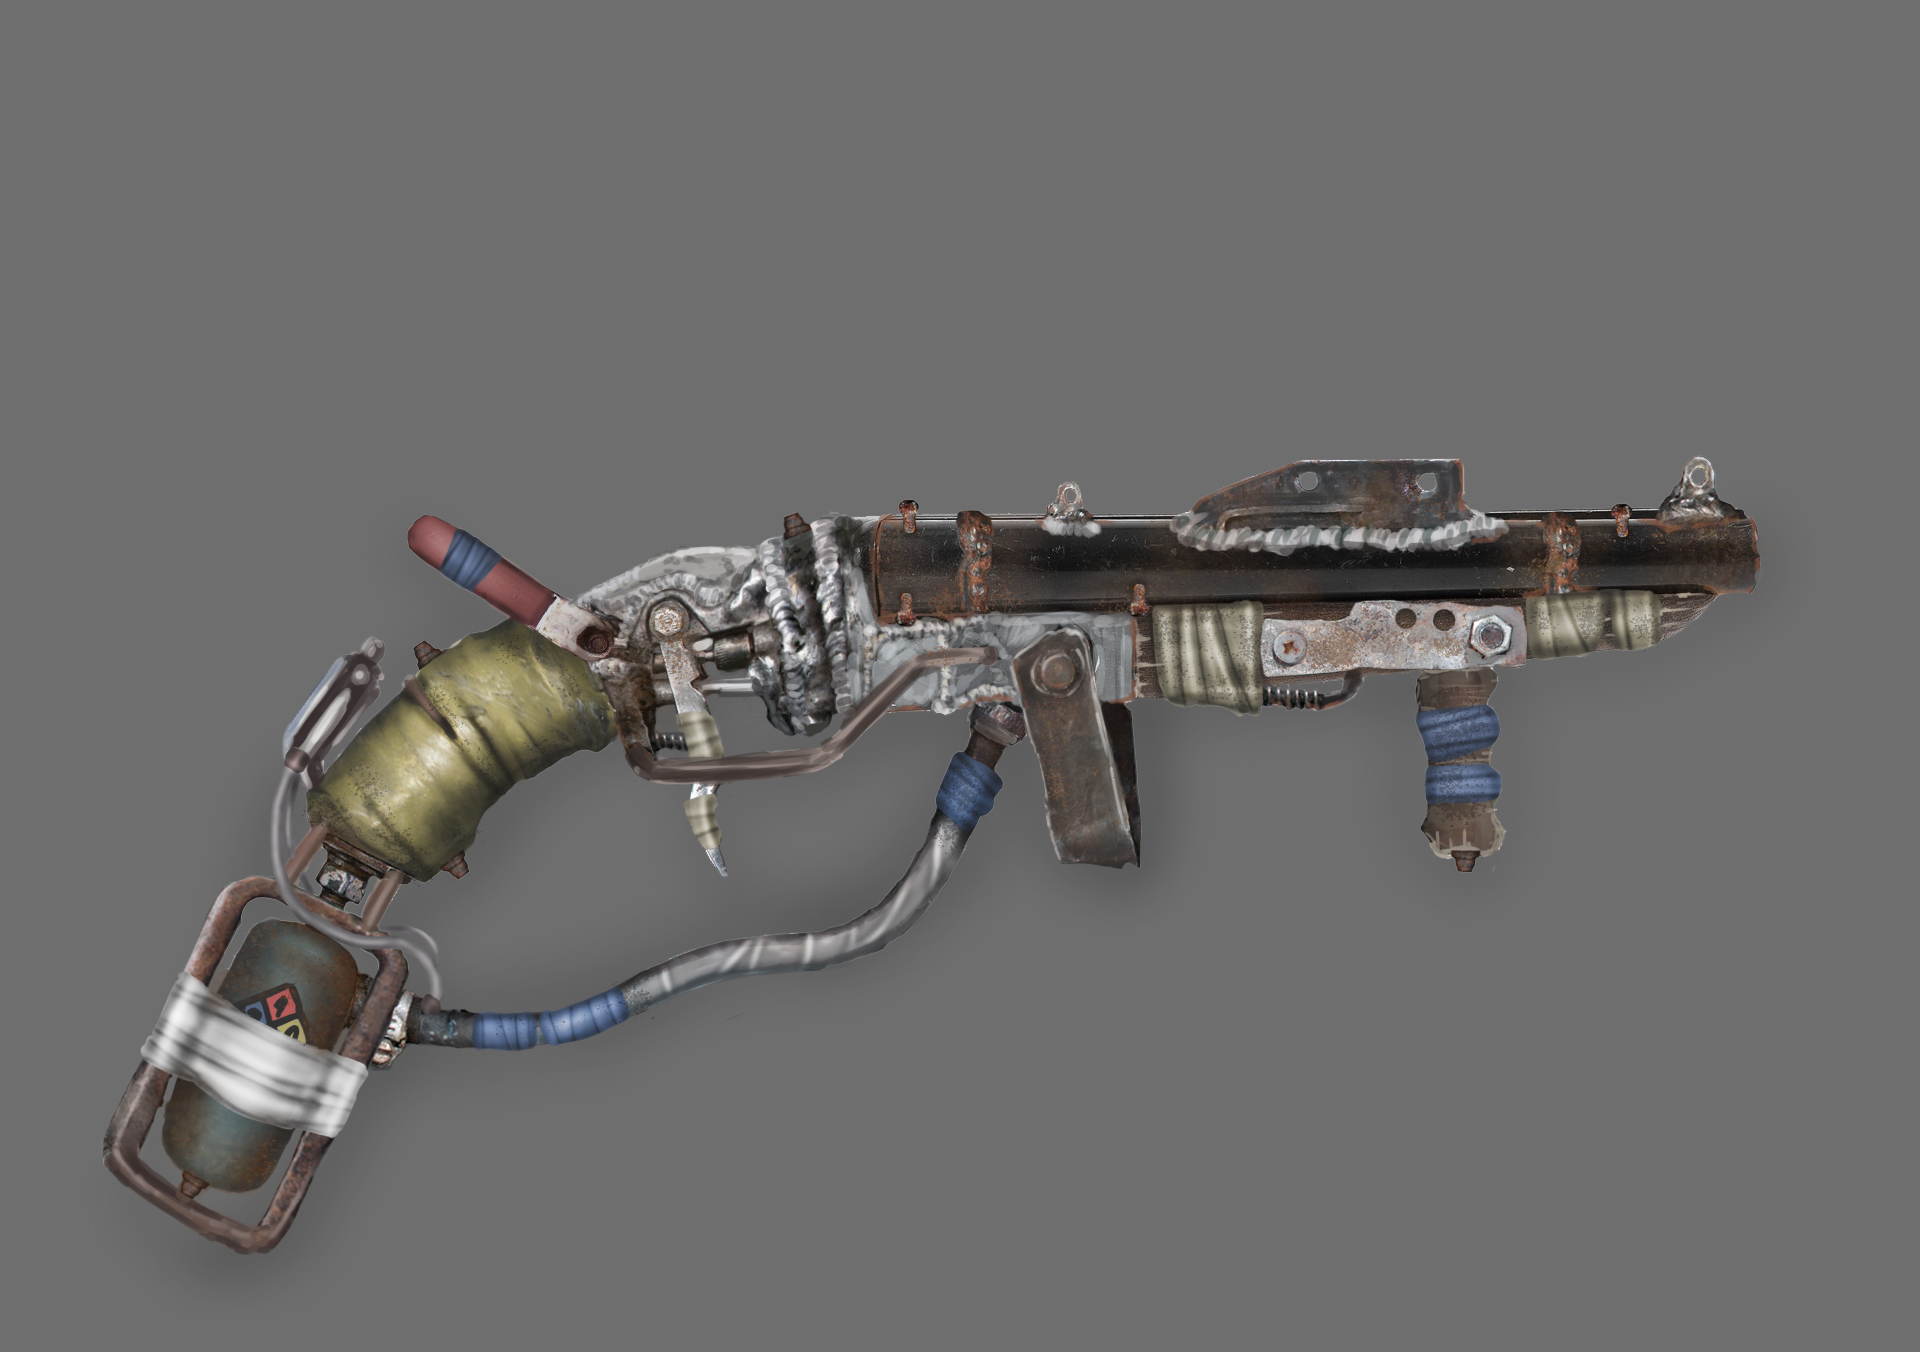 Three D Guns 2 - Challenge - Post Apocalyptic Double Barreled Shotgun